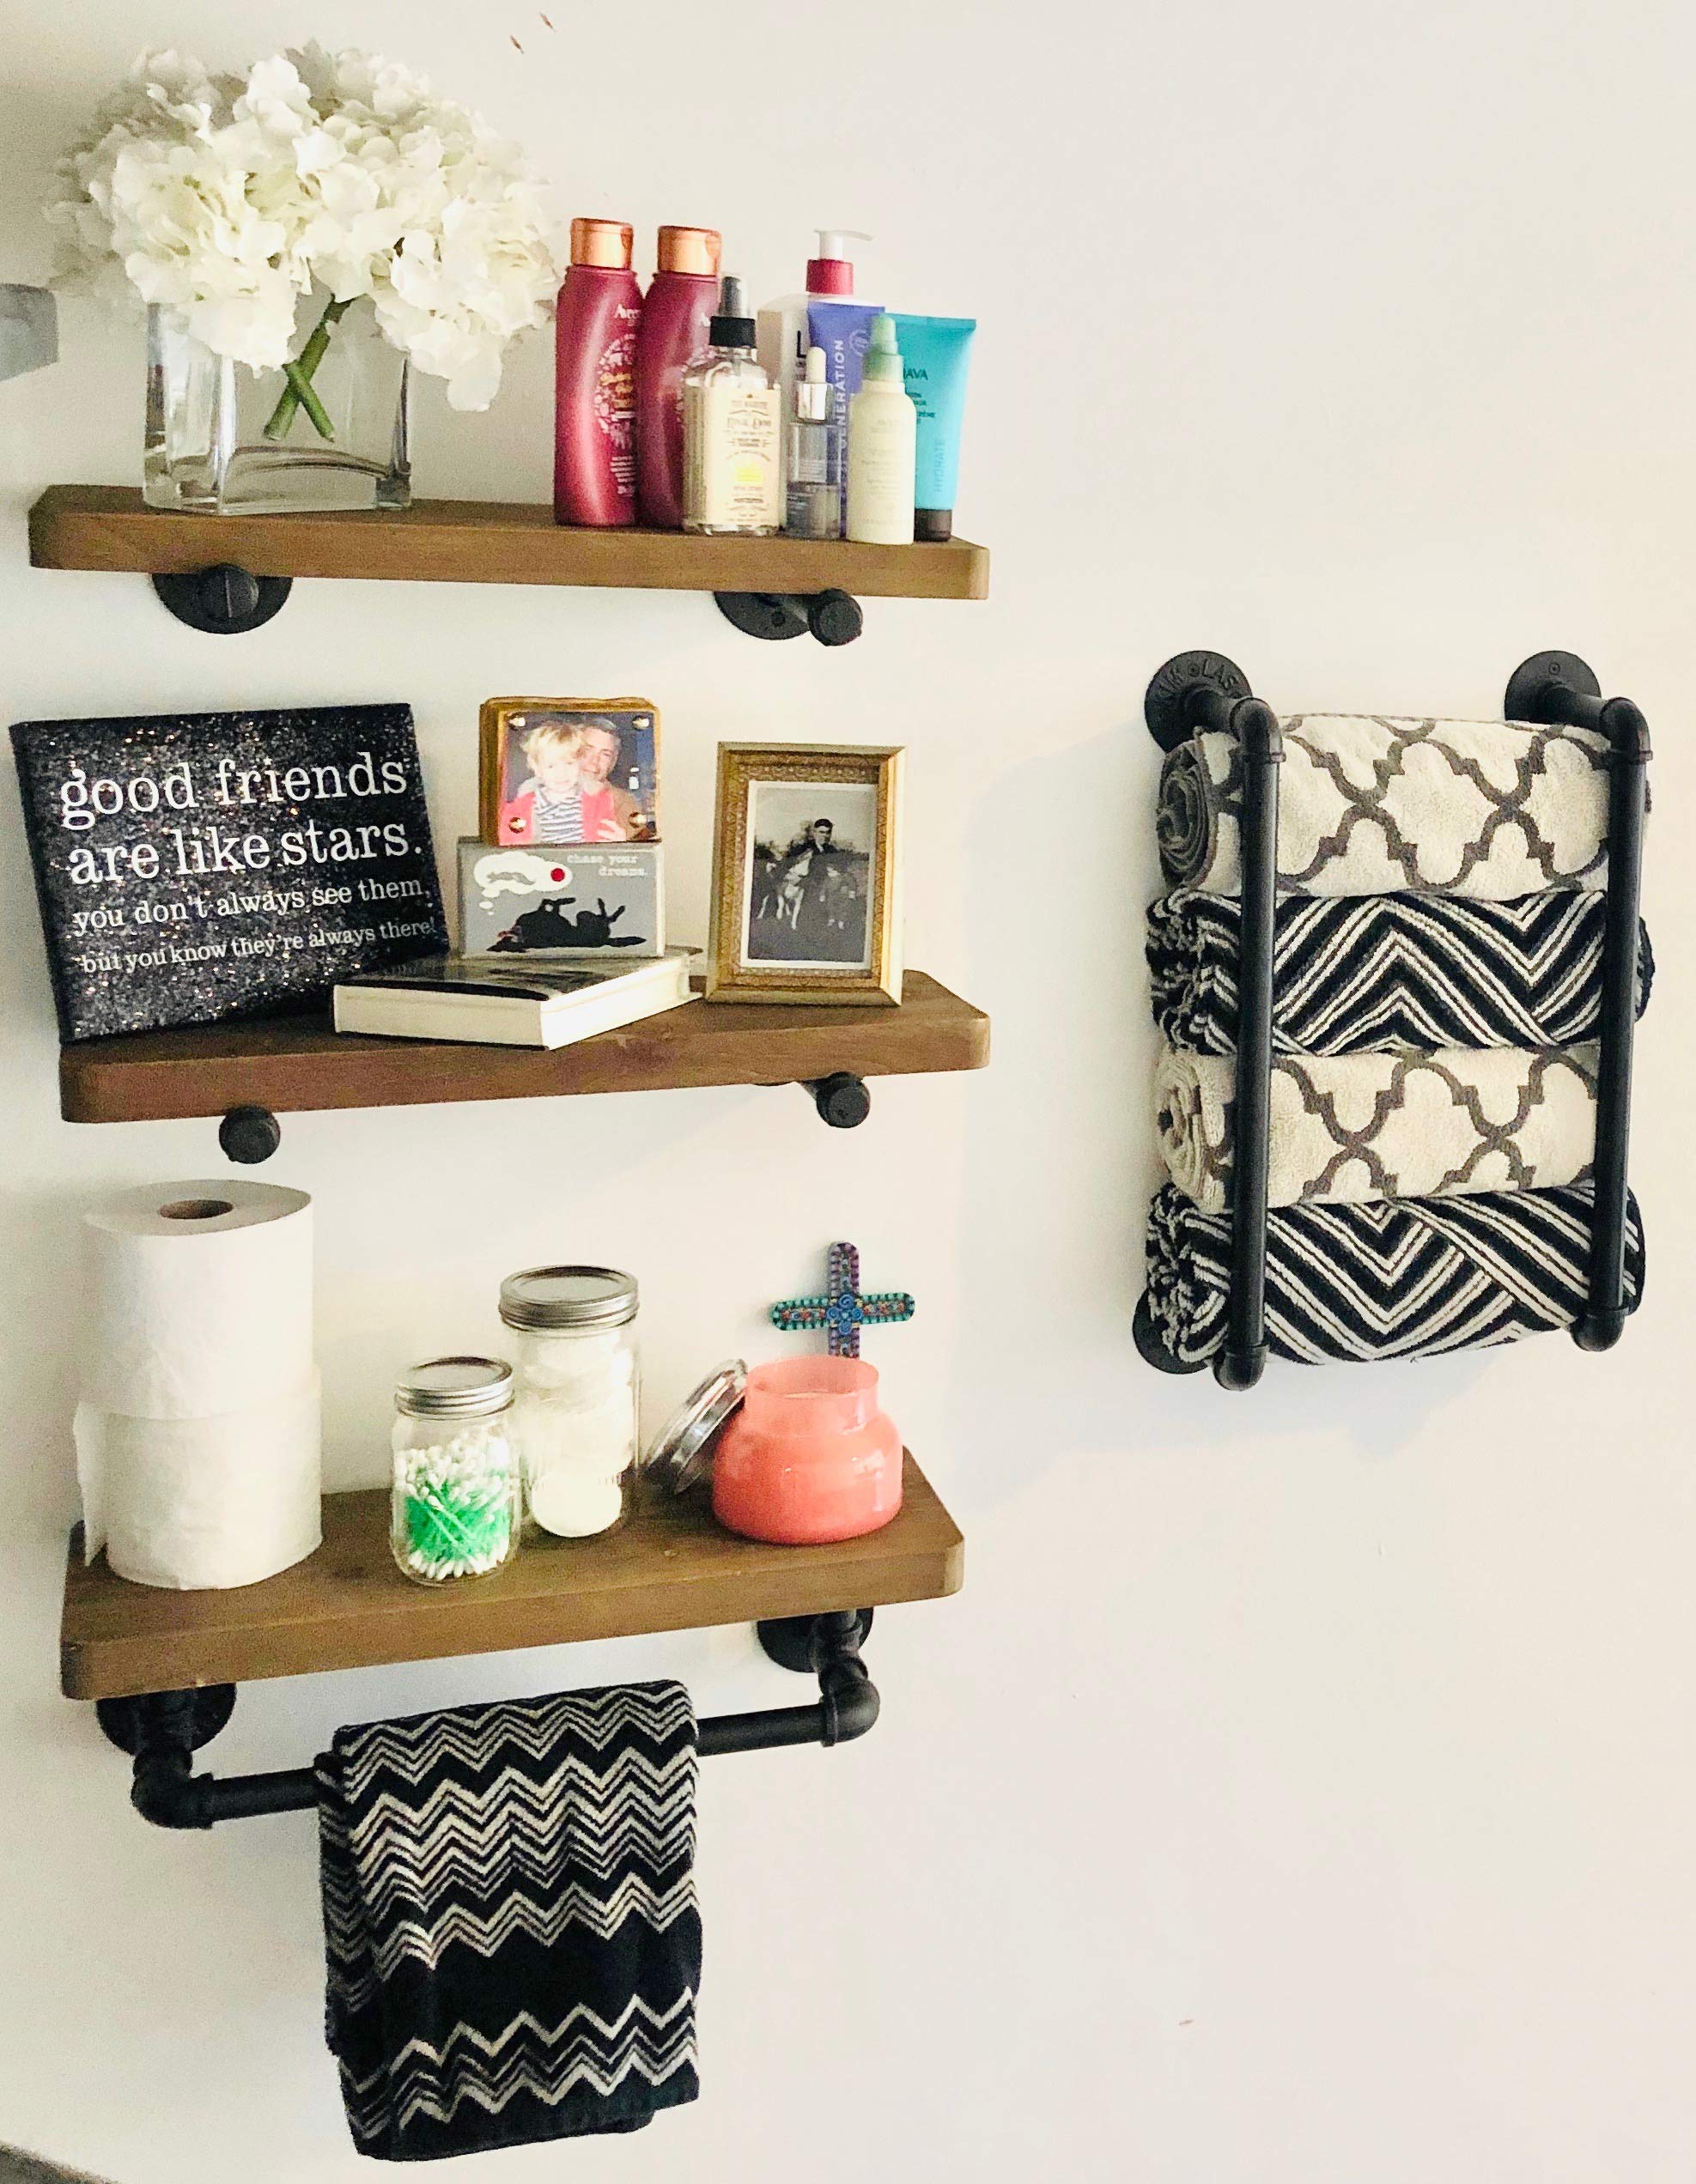 Industrial Pipe Shelves with Both Towel Racks: DIY Floating Wood Shelves on Industrial Pipes - Rustic Mounted Wall Shelf for Bathroom, Kitchen, Living Room, Bedroom - Farmhouse Decor Shelving Units by Olillo